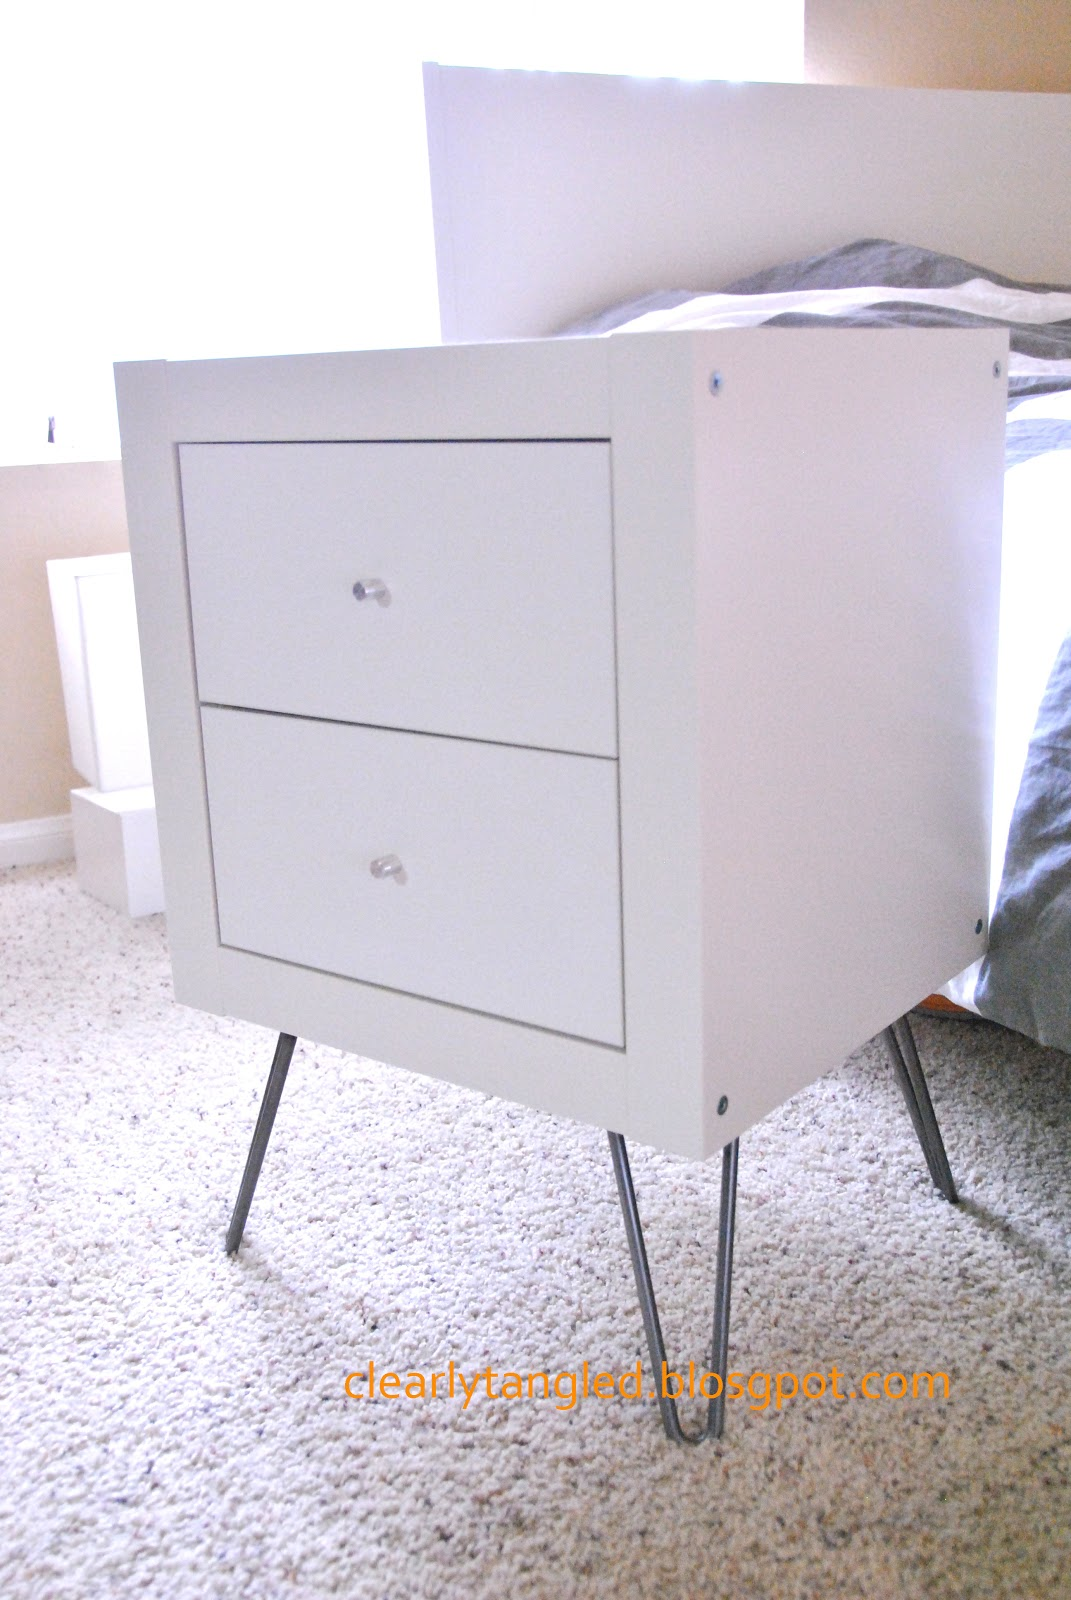 clearlytangled ikea expedit wall shelf nightstand